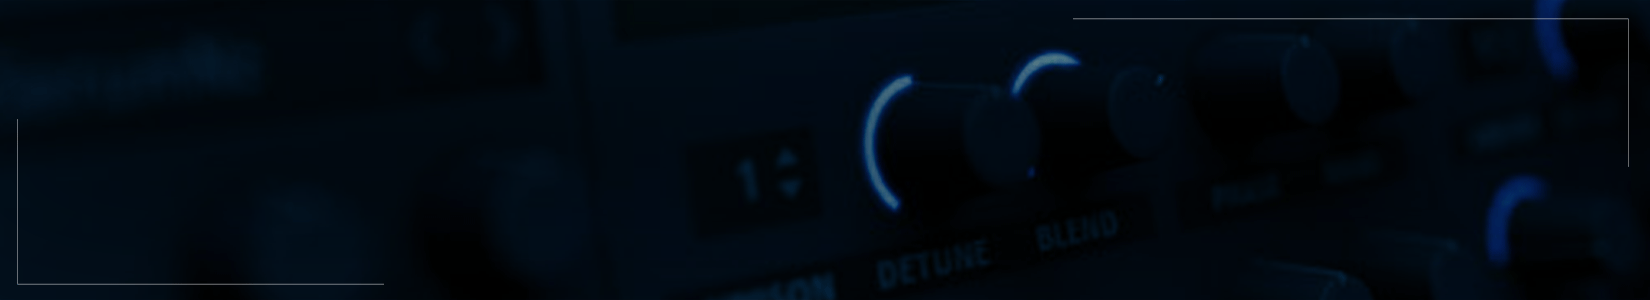 Banner Xfer Serum Free Preset Pack Sound Bank Typhonic Samples Download Lead Bass Pluck House Ambient EDM